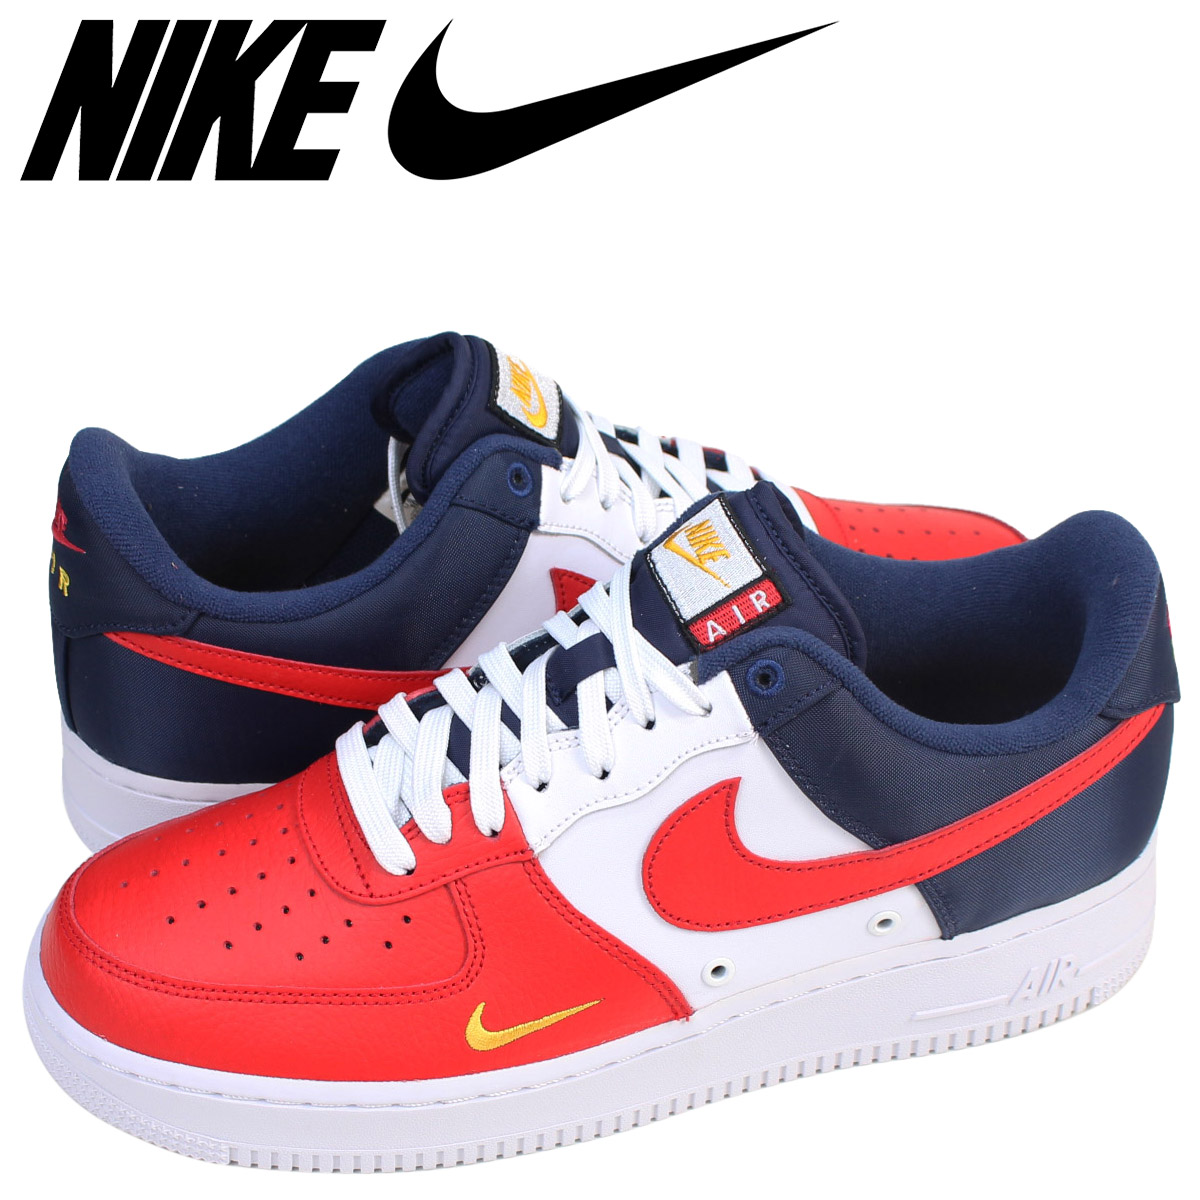 511 Men's 601 Nike Air 1 Tricolor Low Lv8 Force 07 Sneakers 823 0Nnm8w